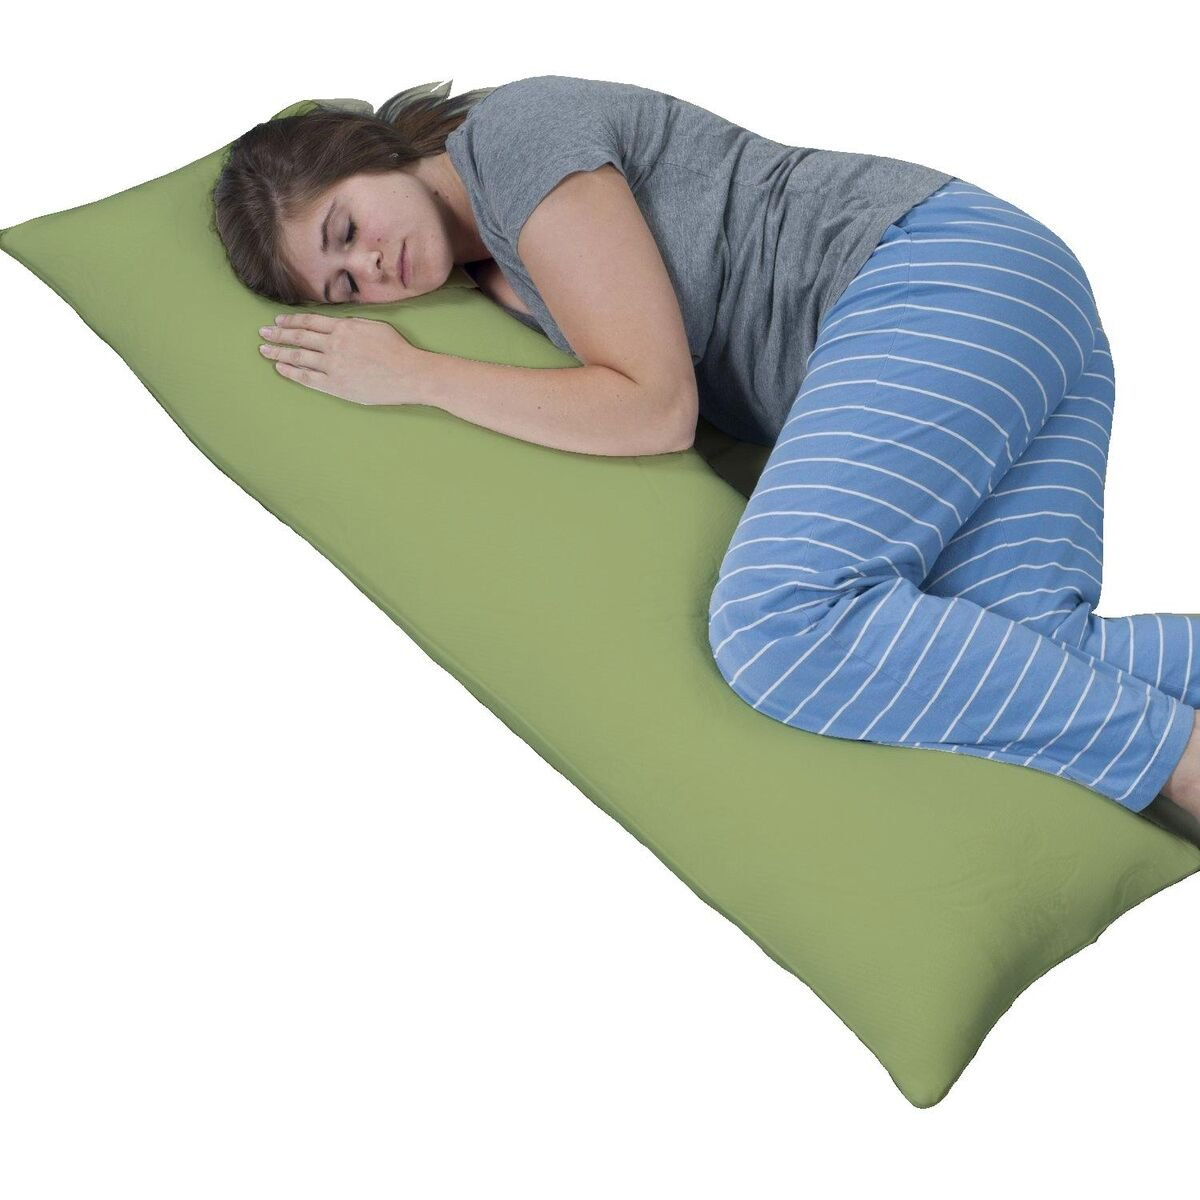 Sage Green MF-BP-SGE Crescent Bedding 1800 series soft and comfy Microfiber Body Pillow Cover